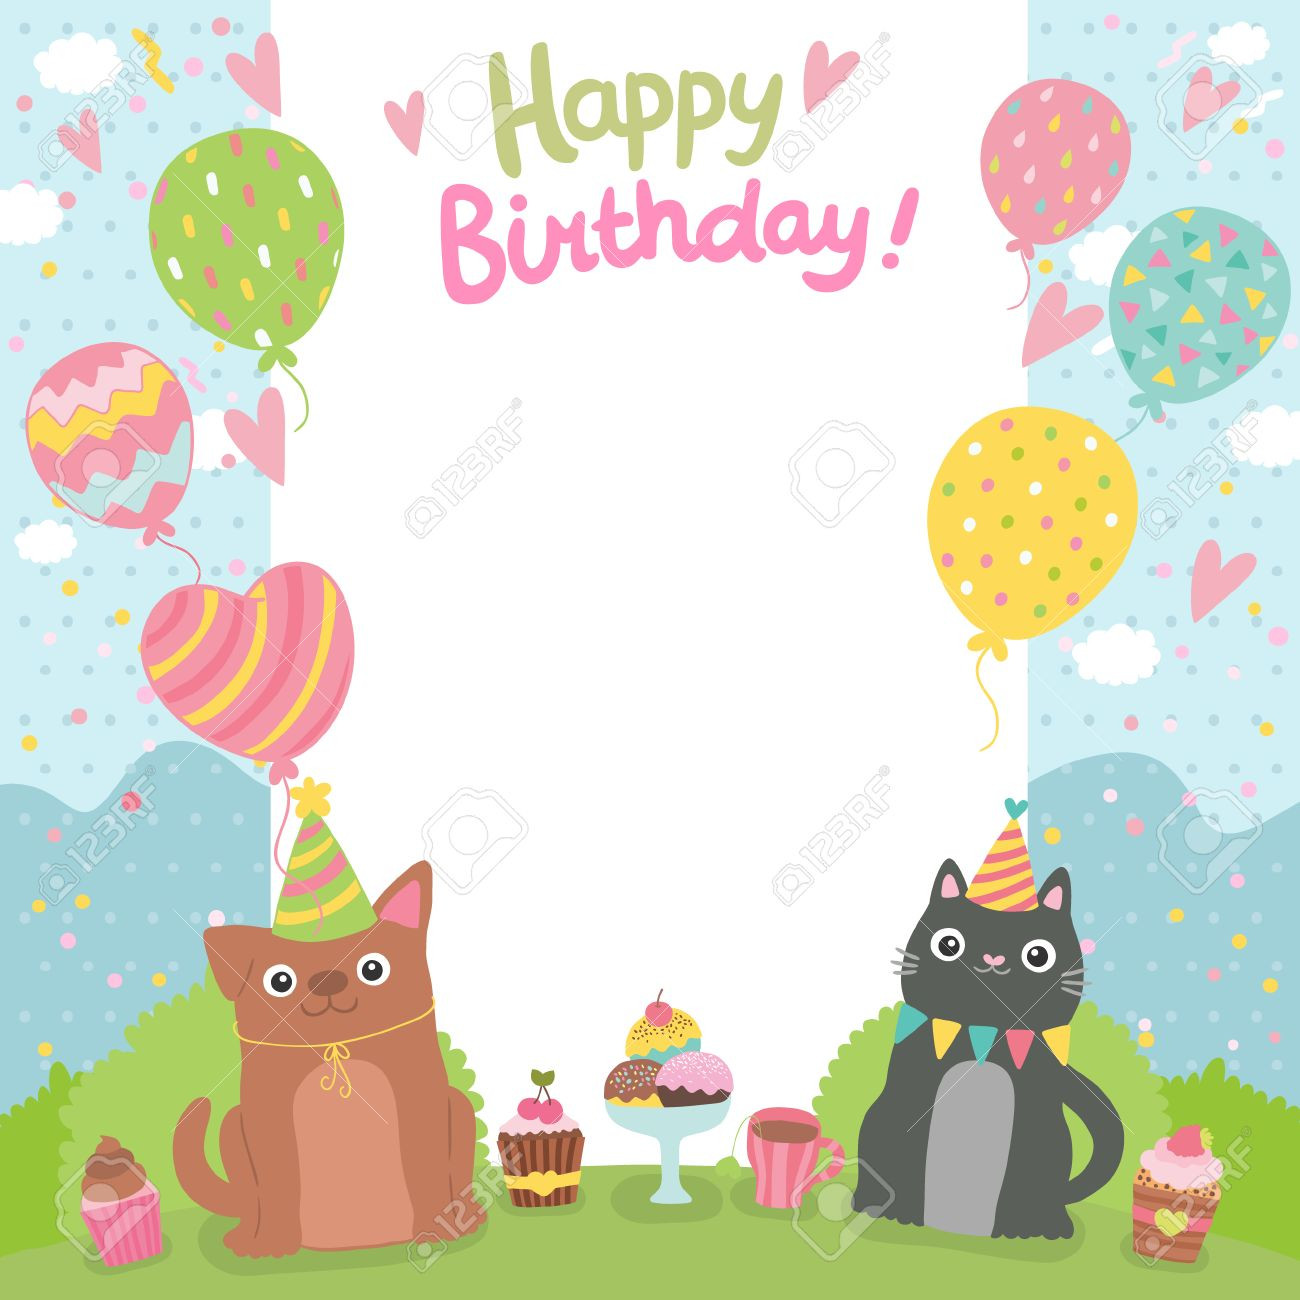 Best ideas about Birthday Card Template . Save or Pin Happy Birthday Card Template regarding Happy Birthday Card Now.